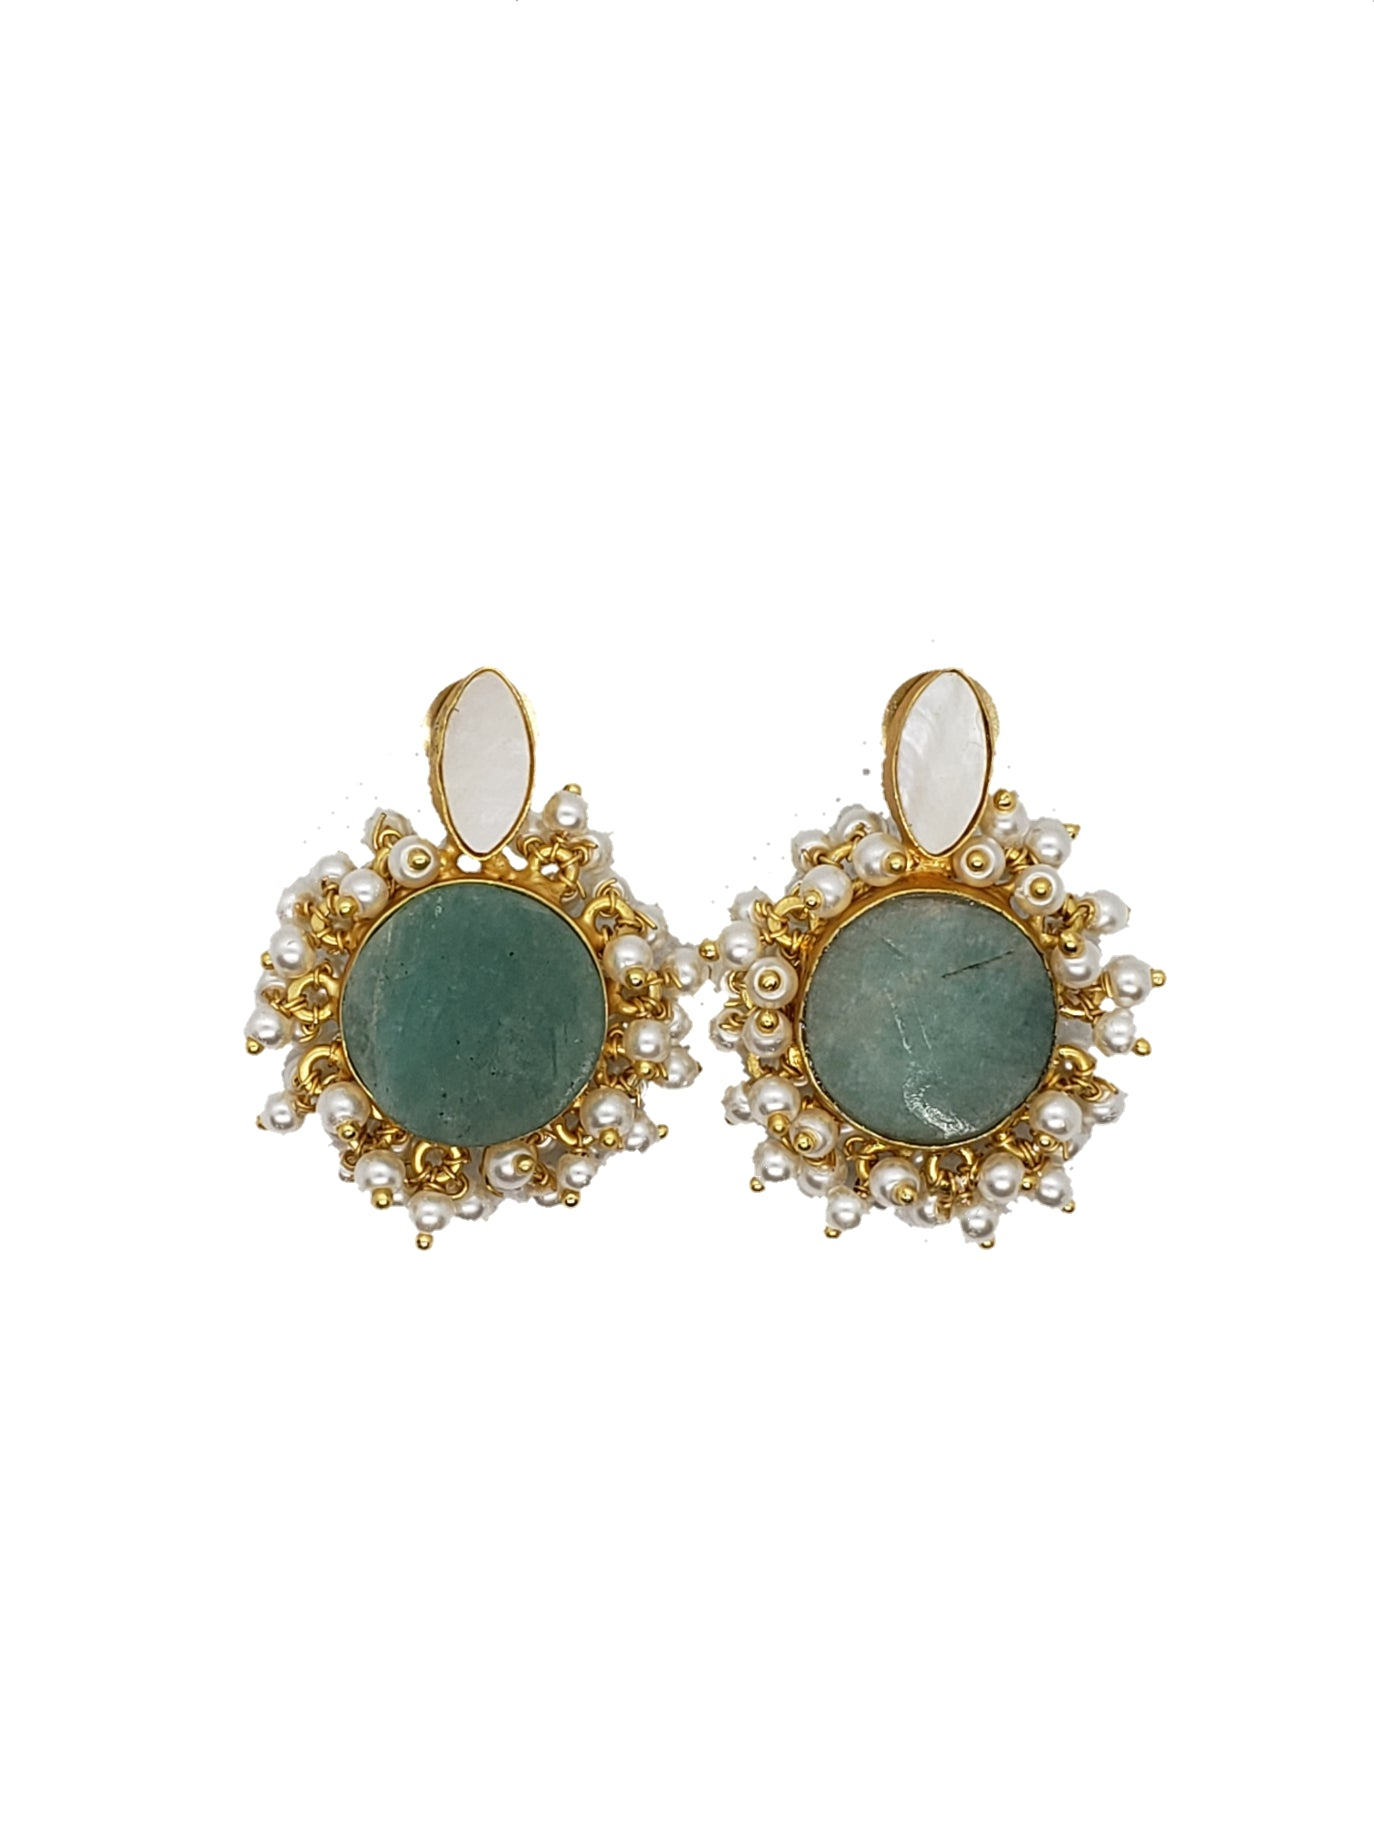 Amazonite and Clustered Pearls Stud Earrings - The Bauble Shop